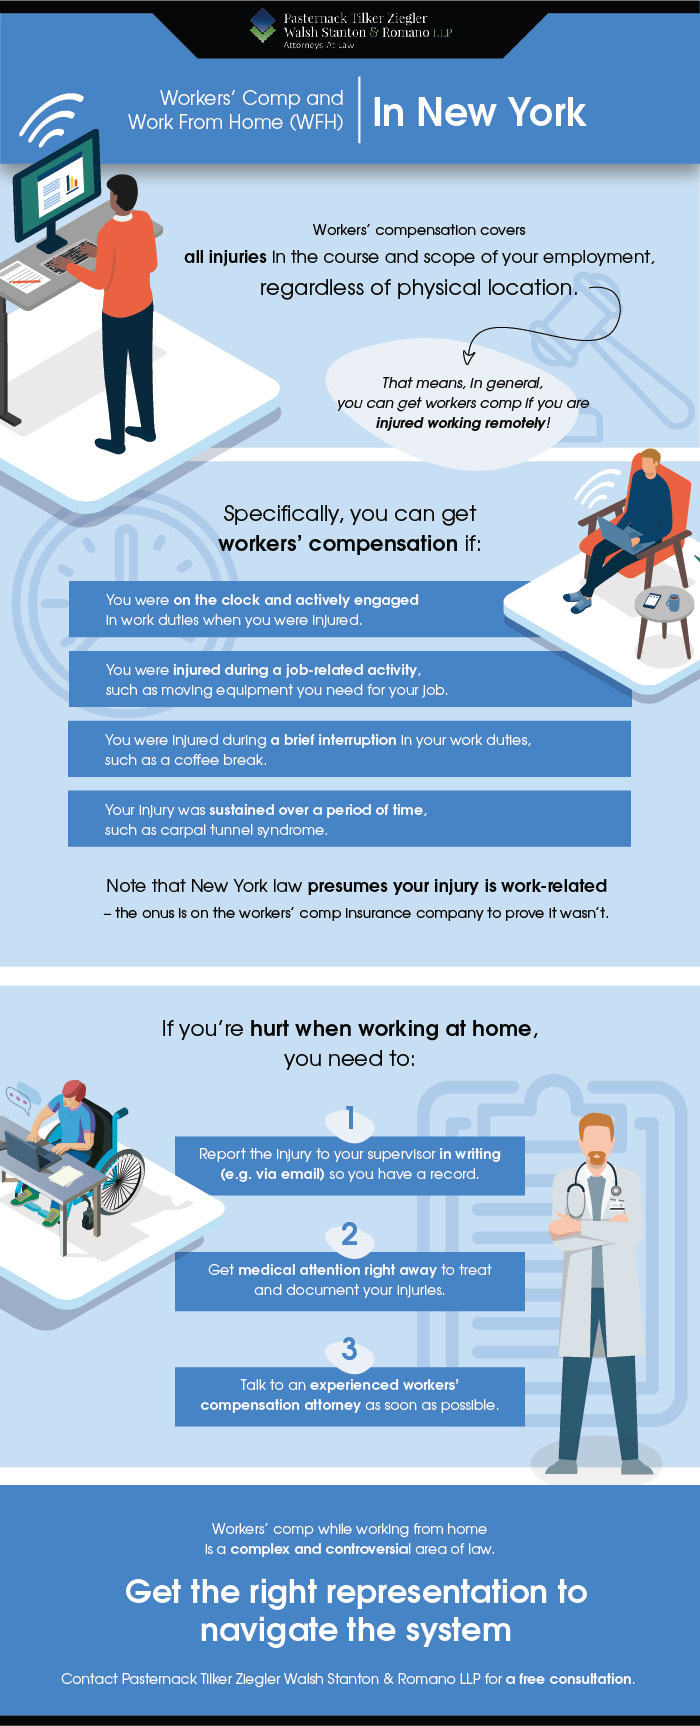 Work From Home and Work From Home infographic